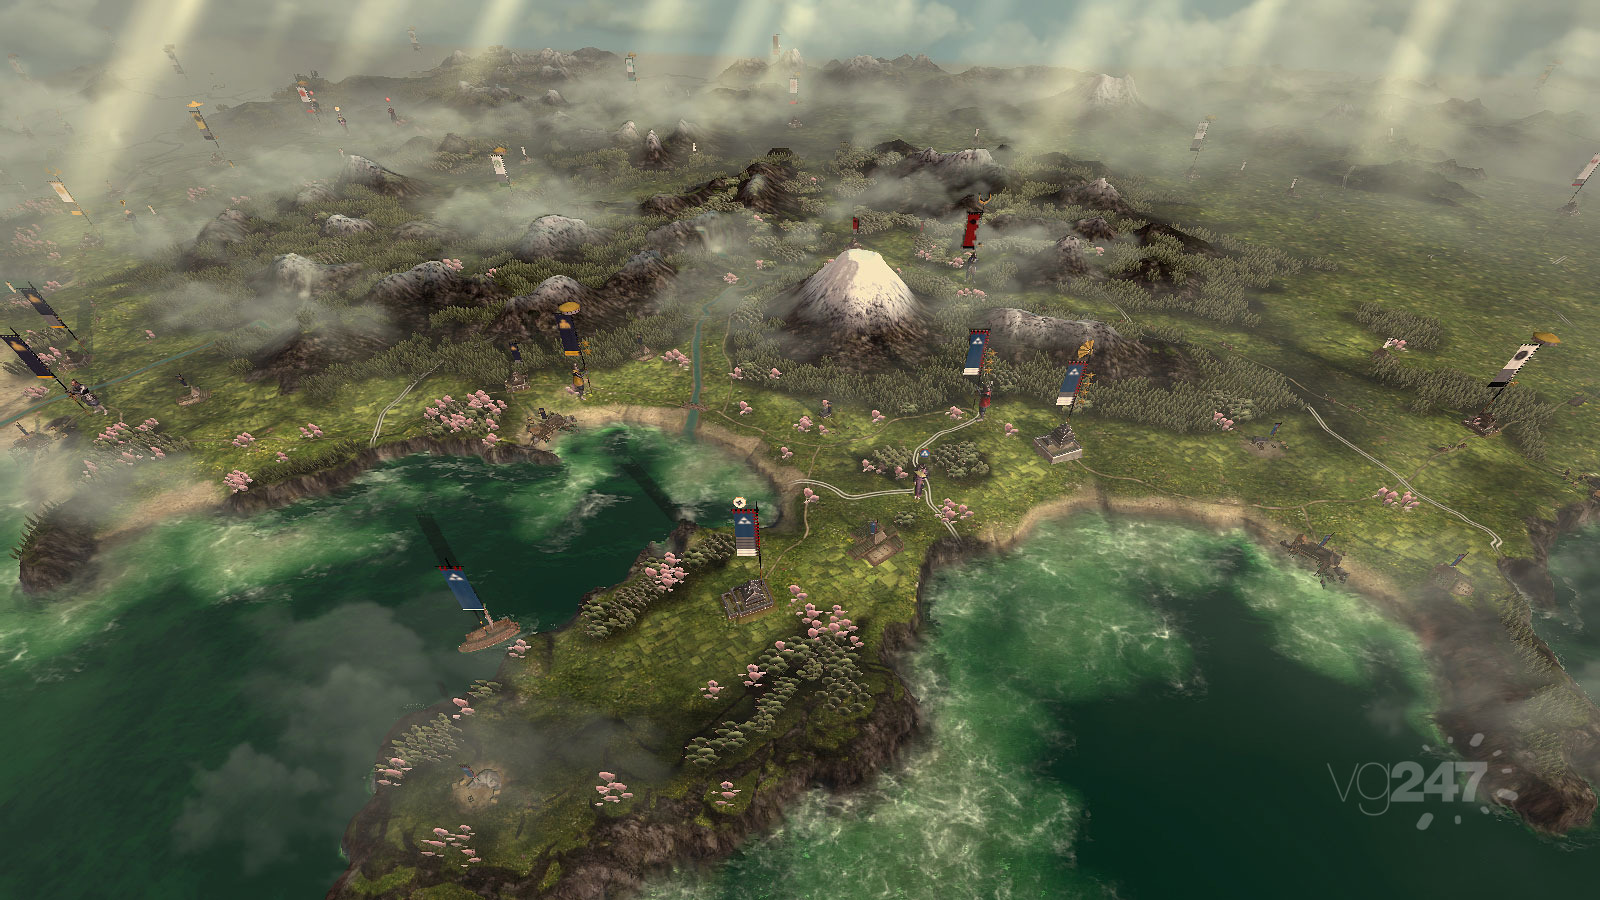 Shogun 2 Fall Of The Samurai Wallpaper Sho Amp Tell Shogun 2 Campaign Map Reveal Rock Paper